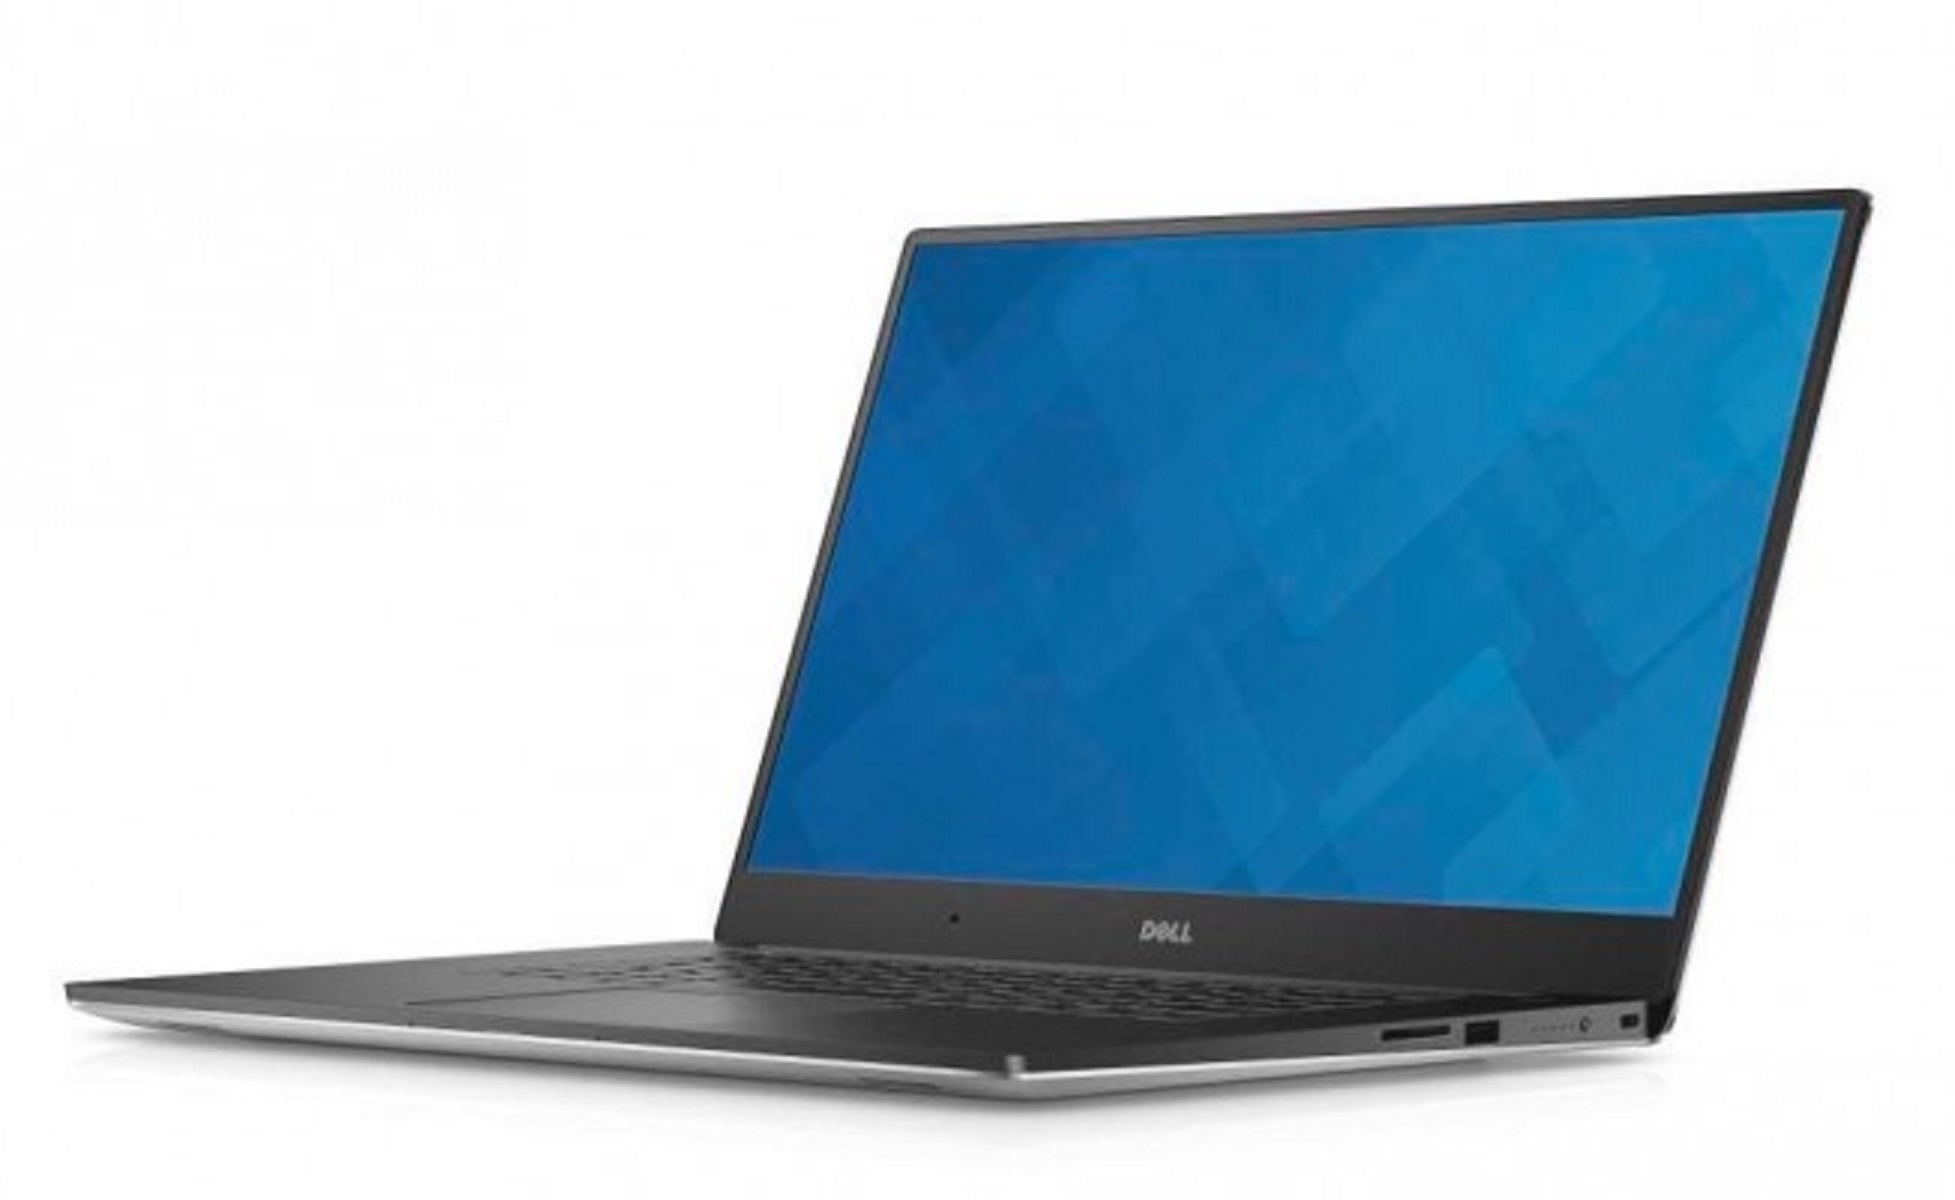 New Lineup of Dell Precision Mobile Workstations Offers More